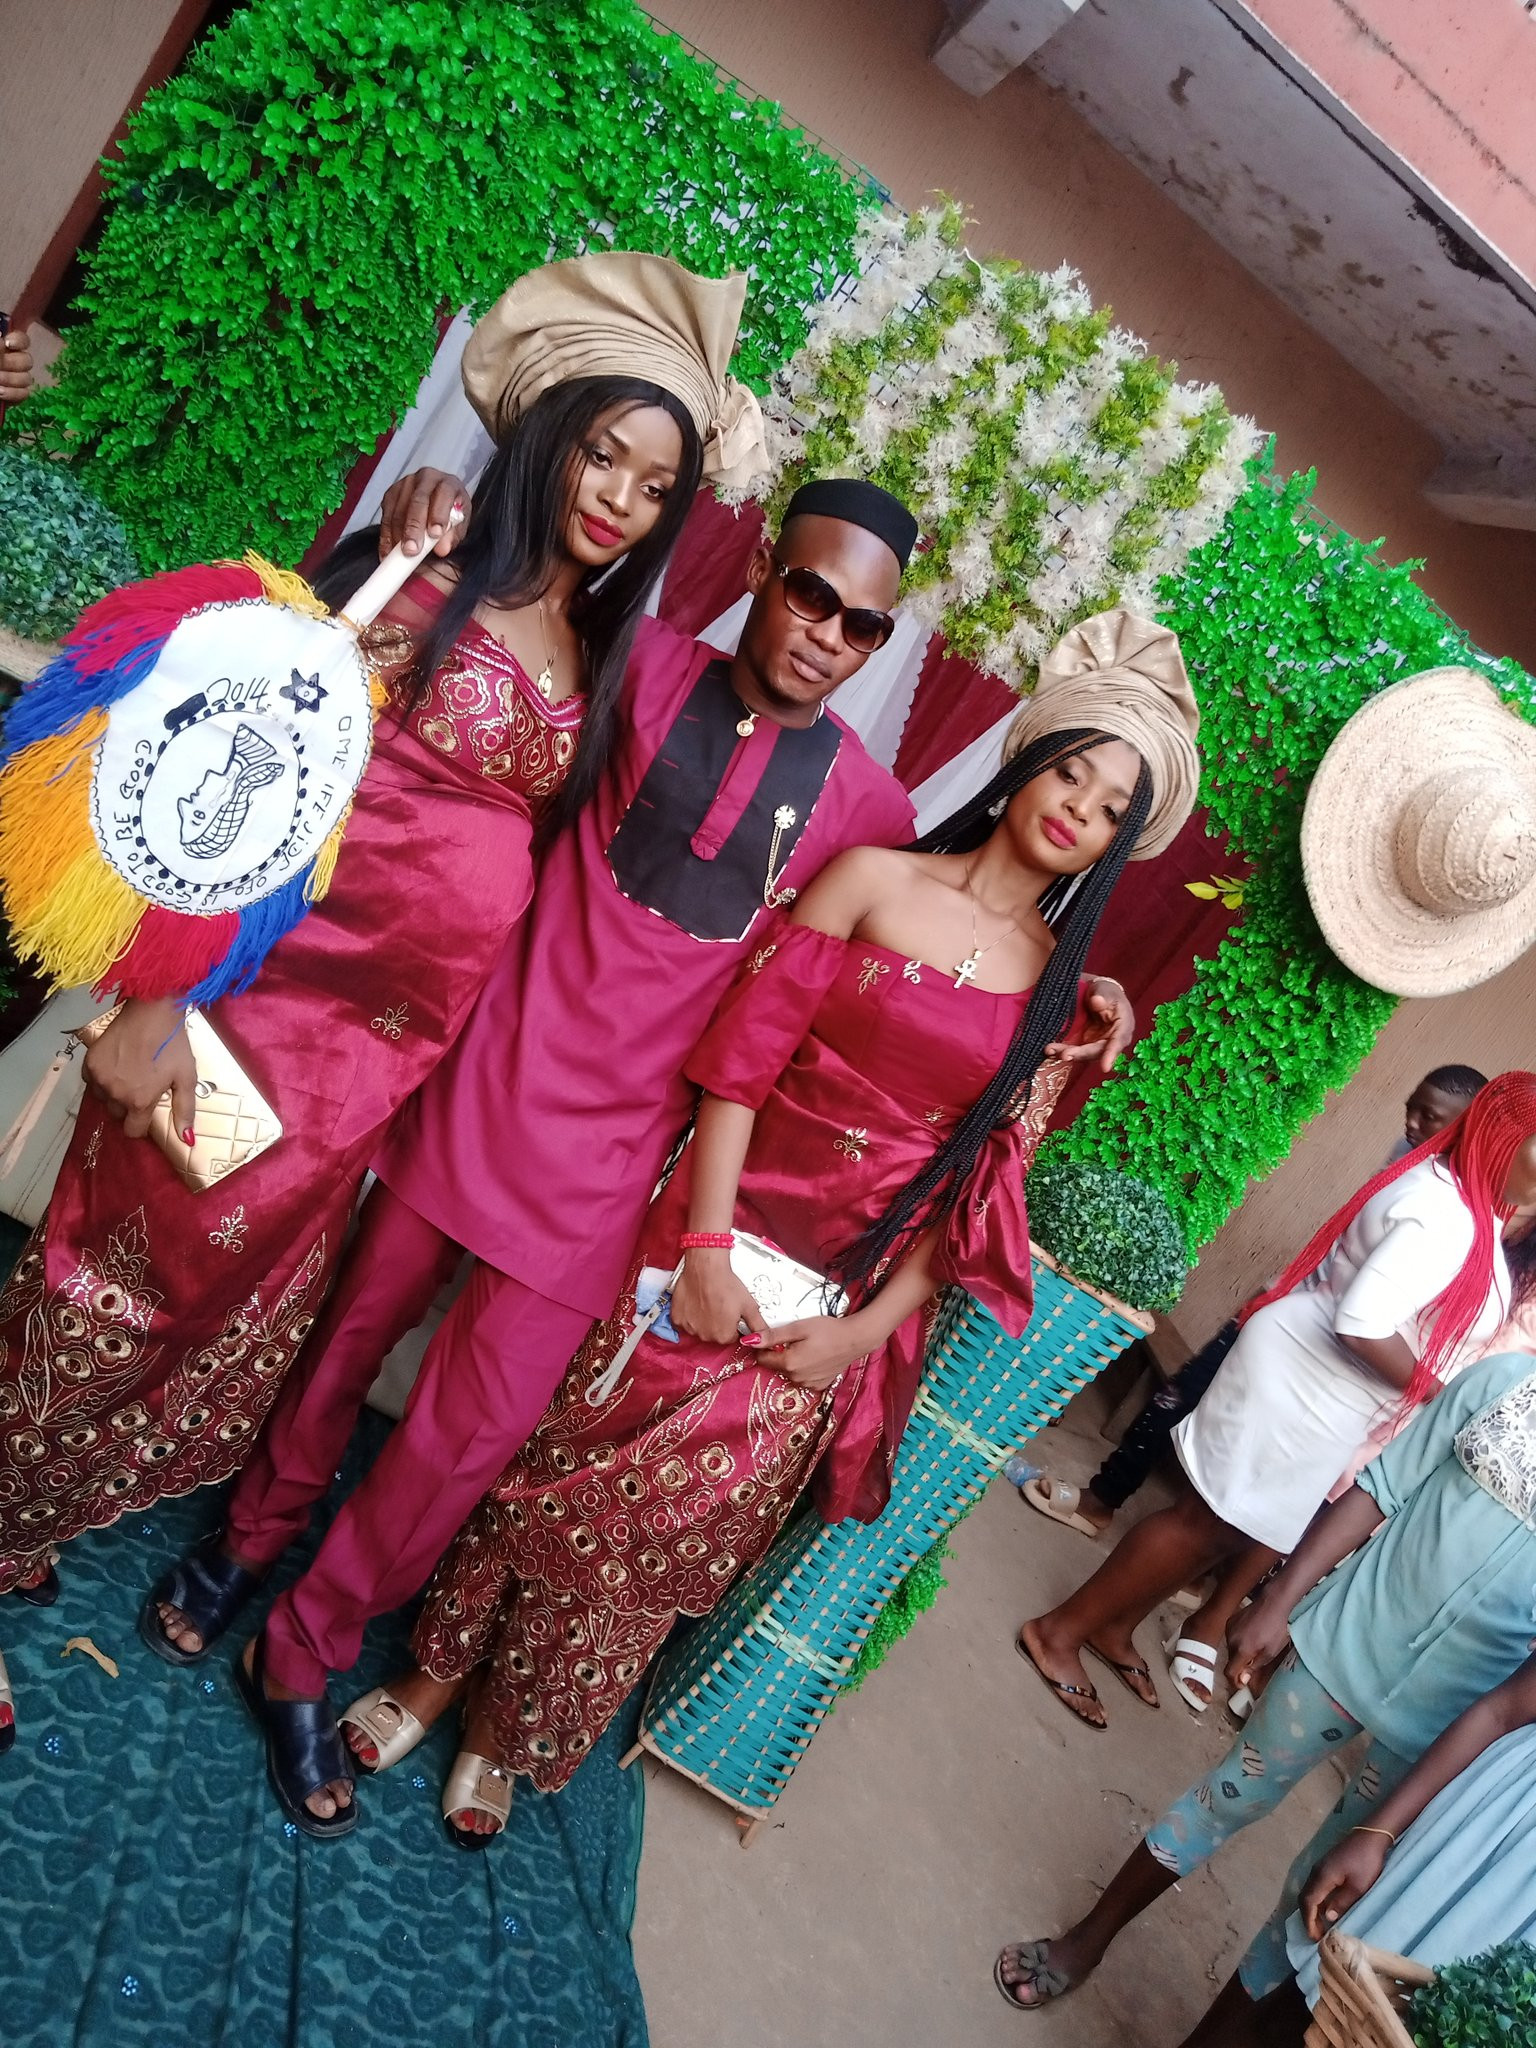 Nigerian man marries twins because 'they cant live without each other' lindaikejisblog 2